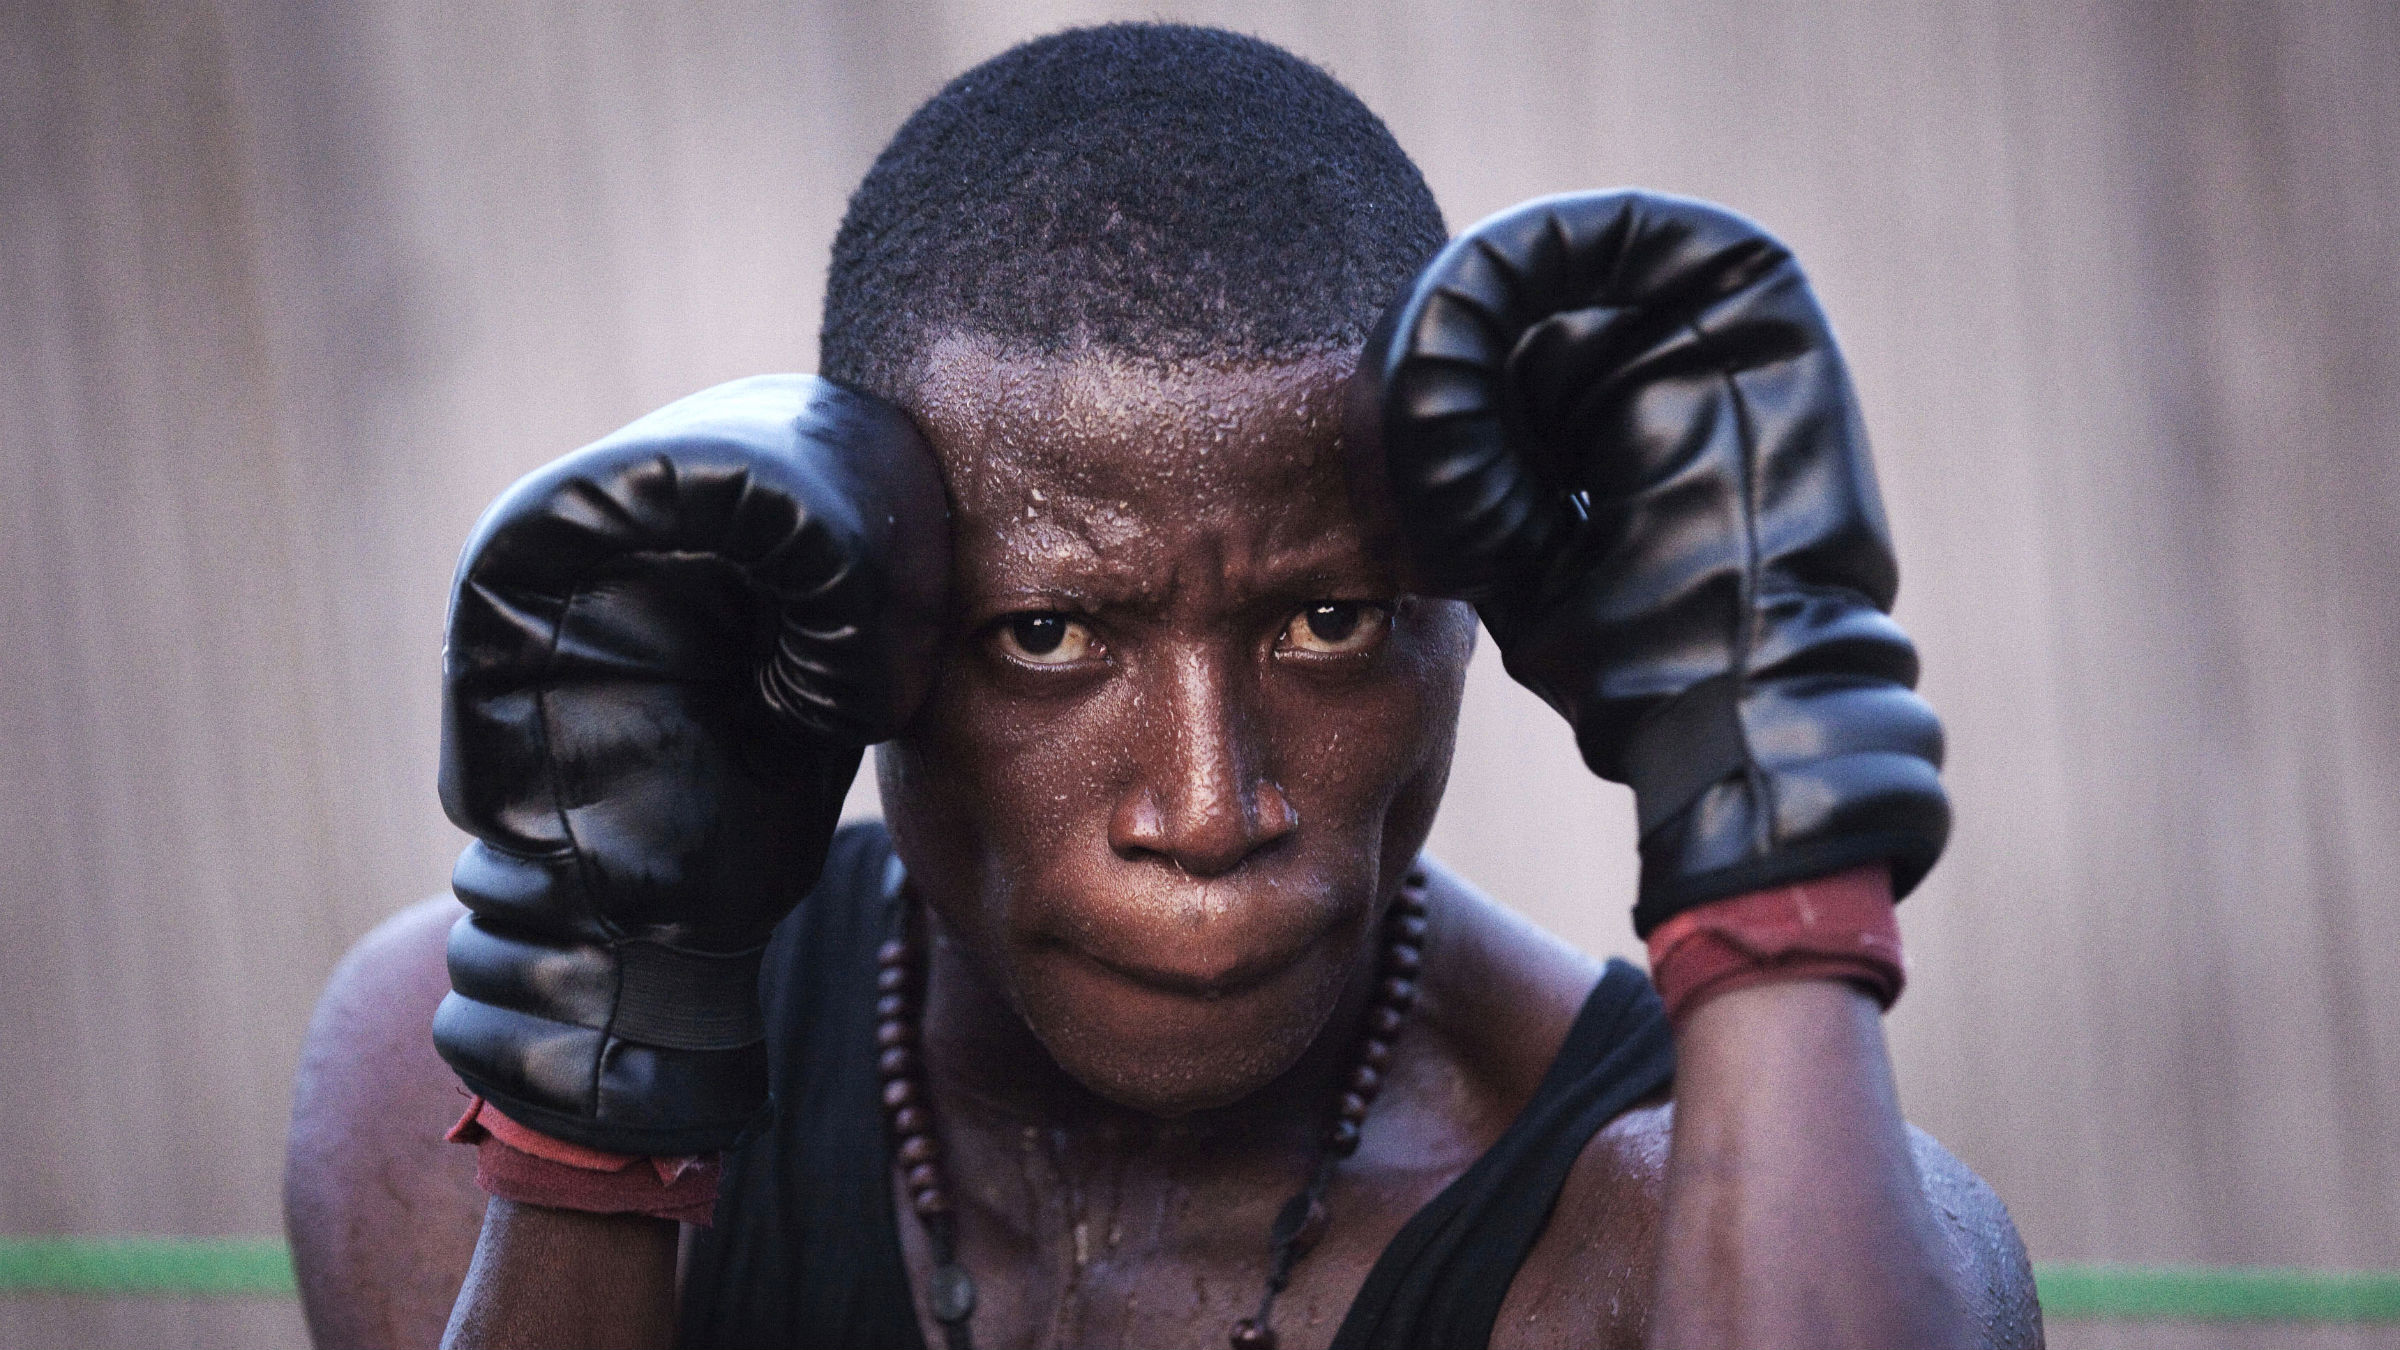 Samuel Amoo, 26, works out during a training session at the Afro Boxing Club in the Akpakpa neighbourhood of Benin's capital Cotonou, November 16, 2011.